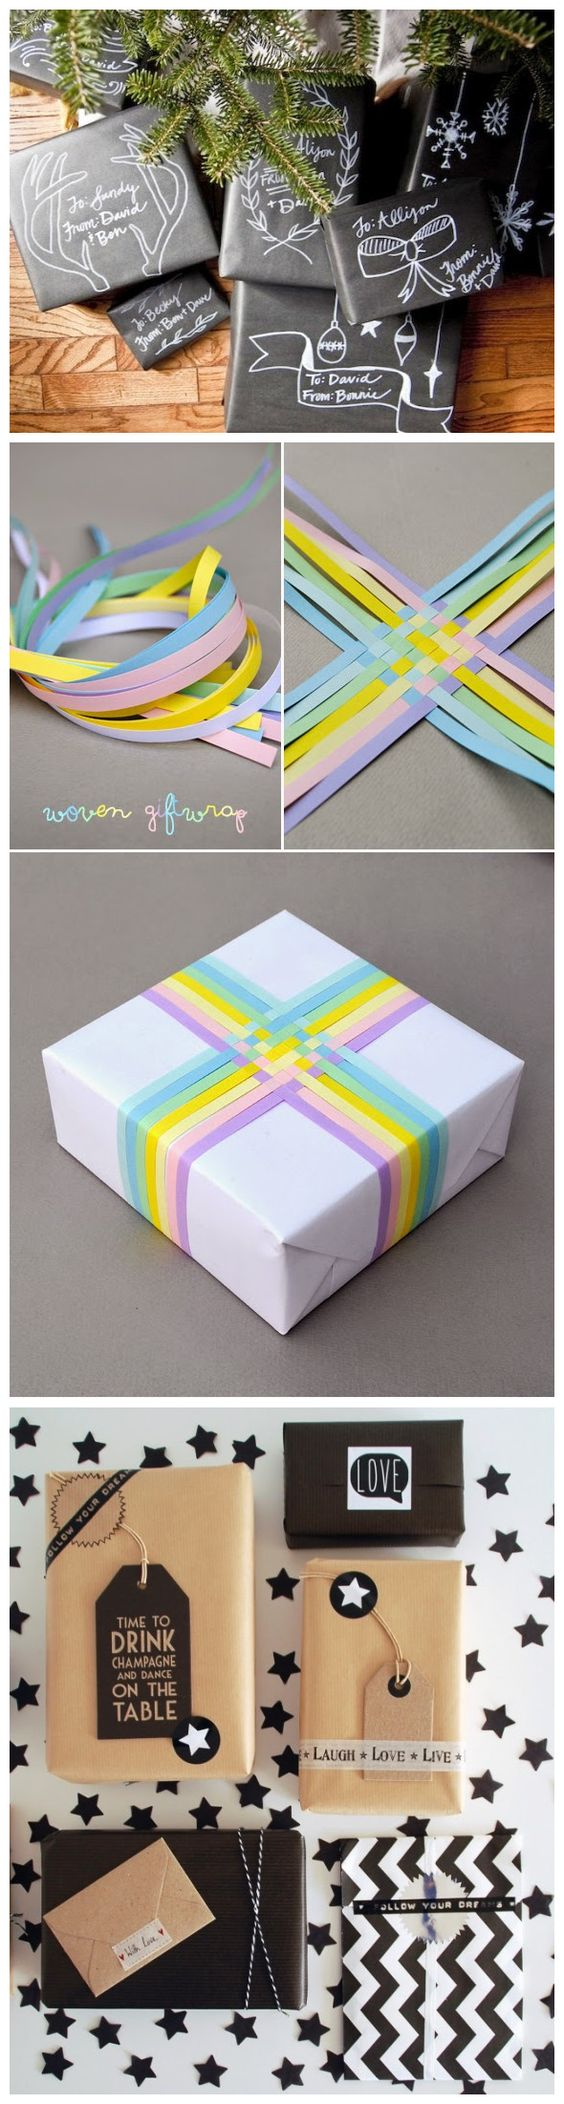 Here are some great ways to wrap your presents for Mother's Day gifts. Already bought presents for your mom? Wrap it yourself!